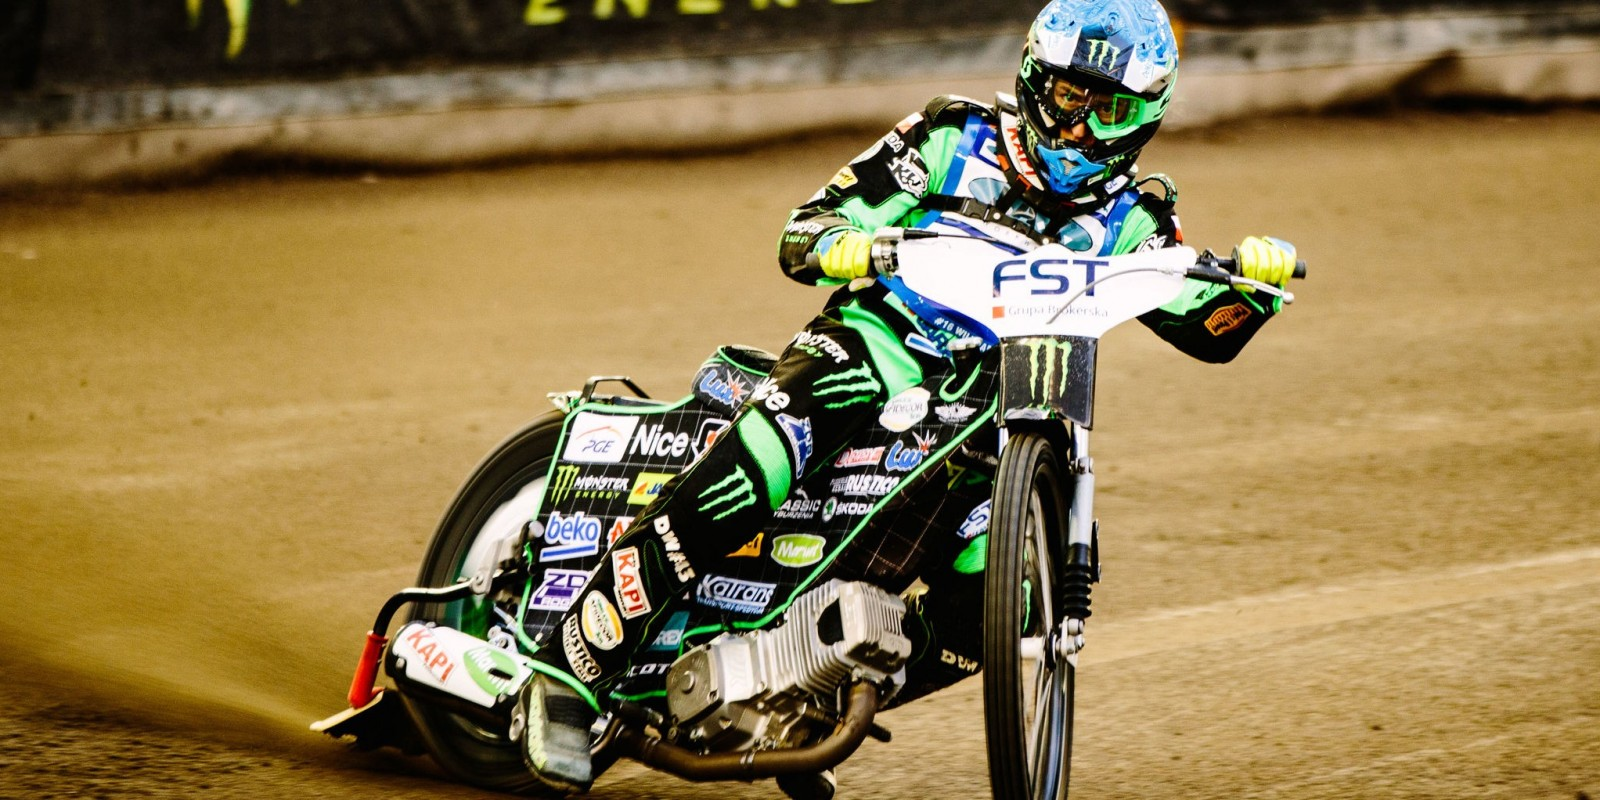 Images from official practise at the 2016 Polish Speedway GP